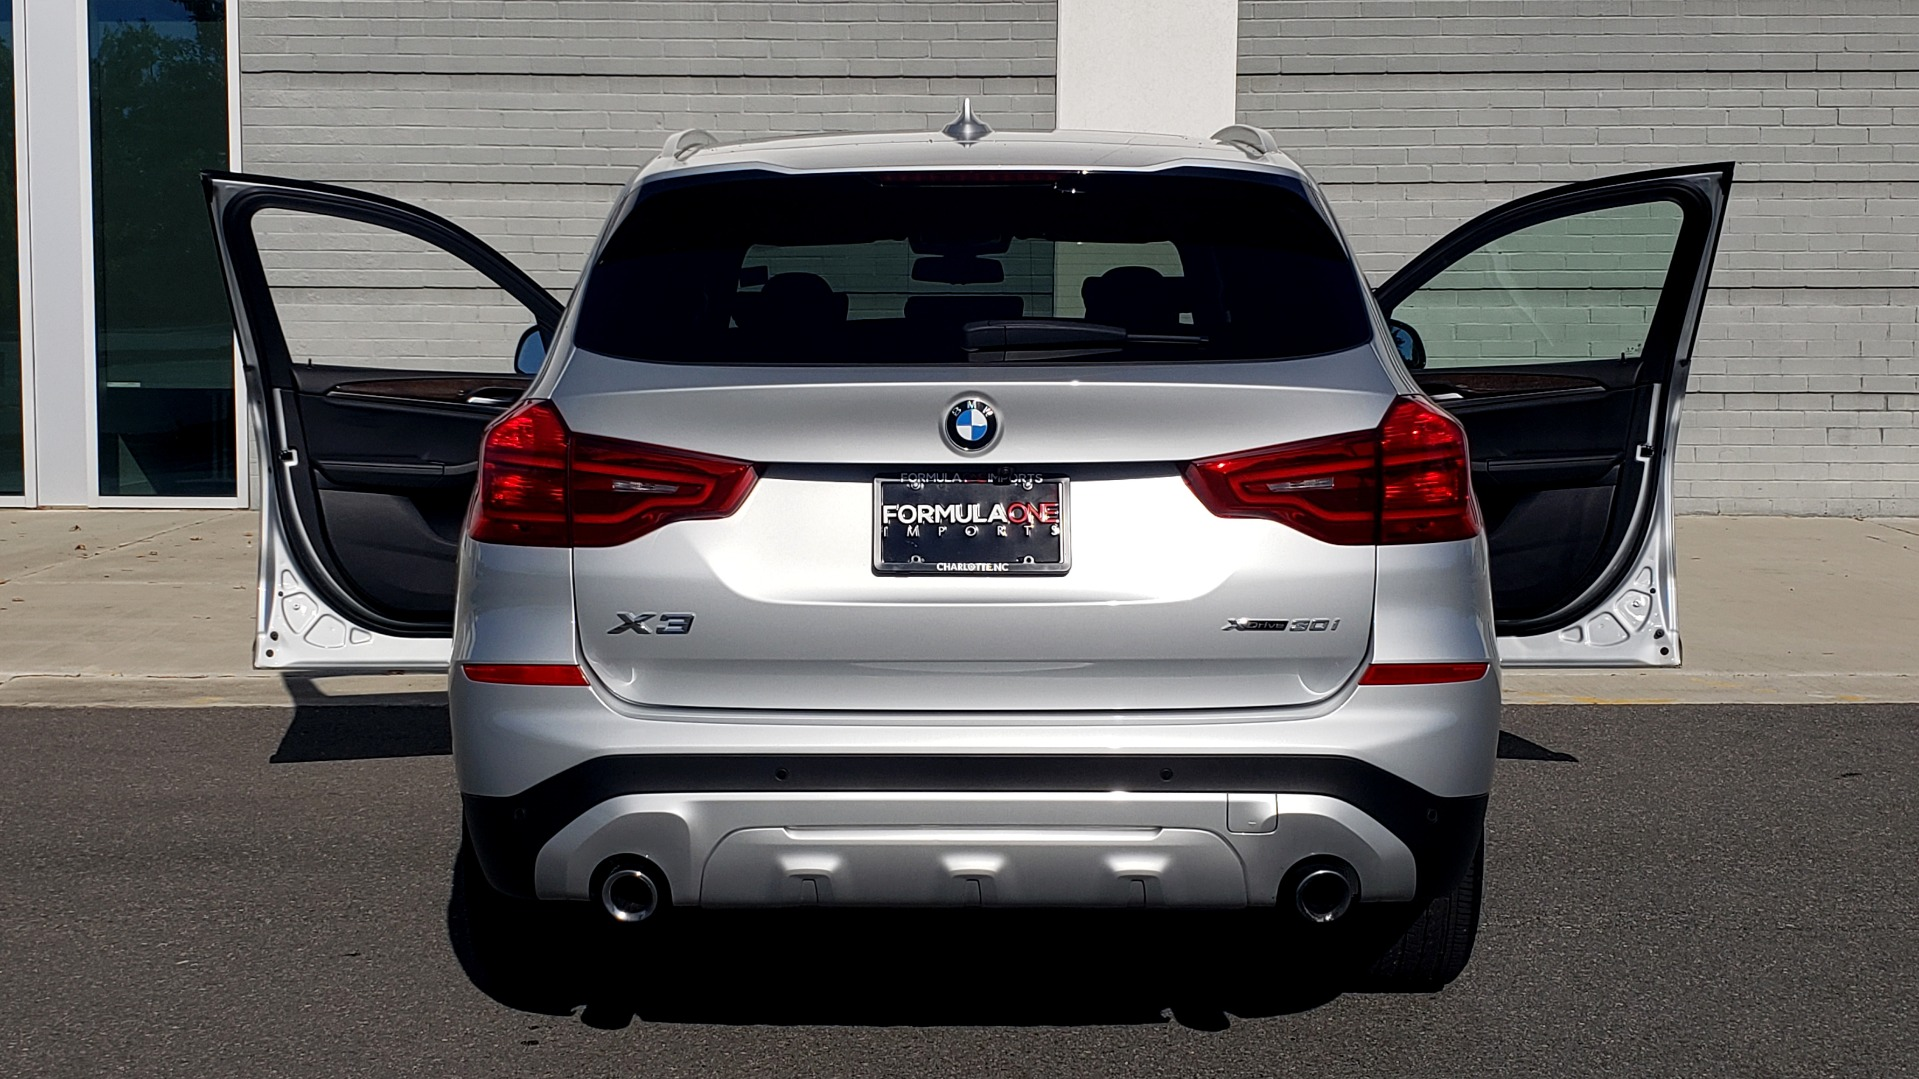 Used 2019 BMW X3 XDRIVE30I / DRVR ASST / PANO-ROOF / HTD STS / REARVIEW for sale $41,995 at Formula Imports in Charlotte NC 28227 31